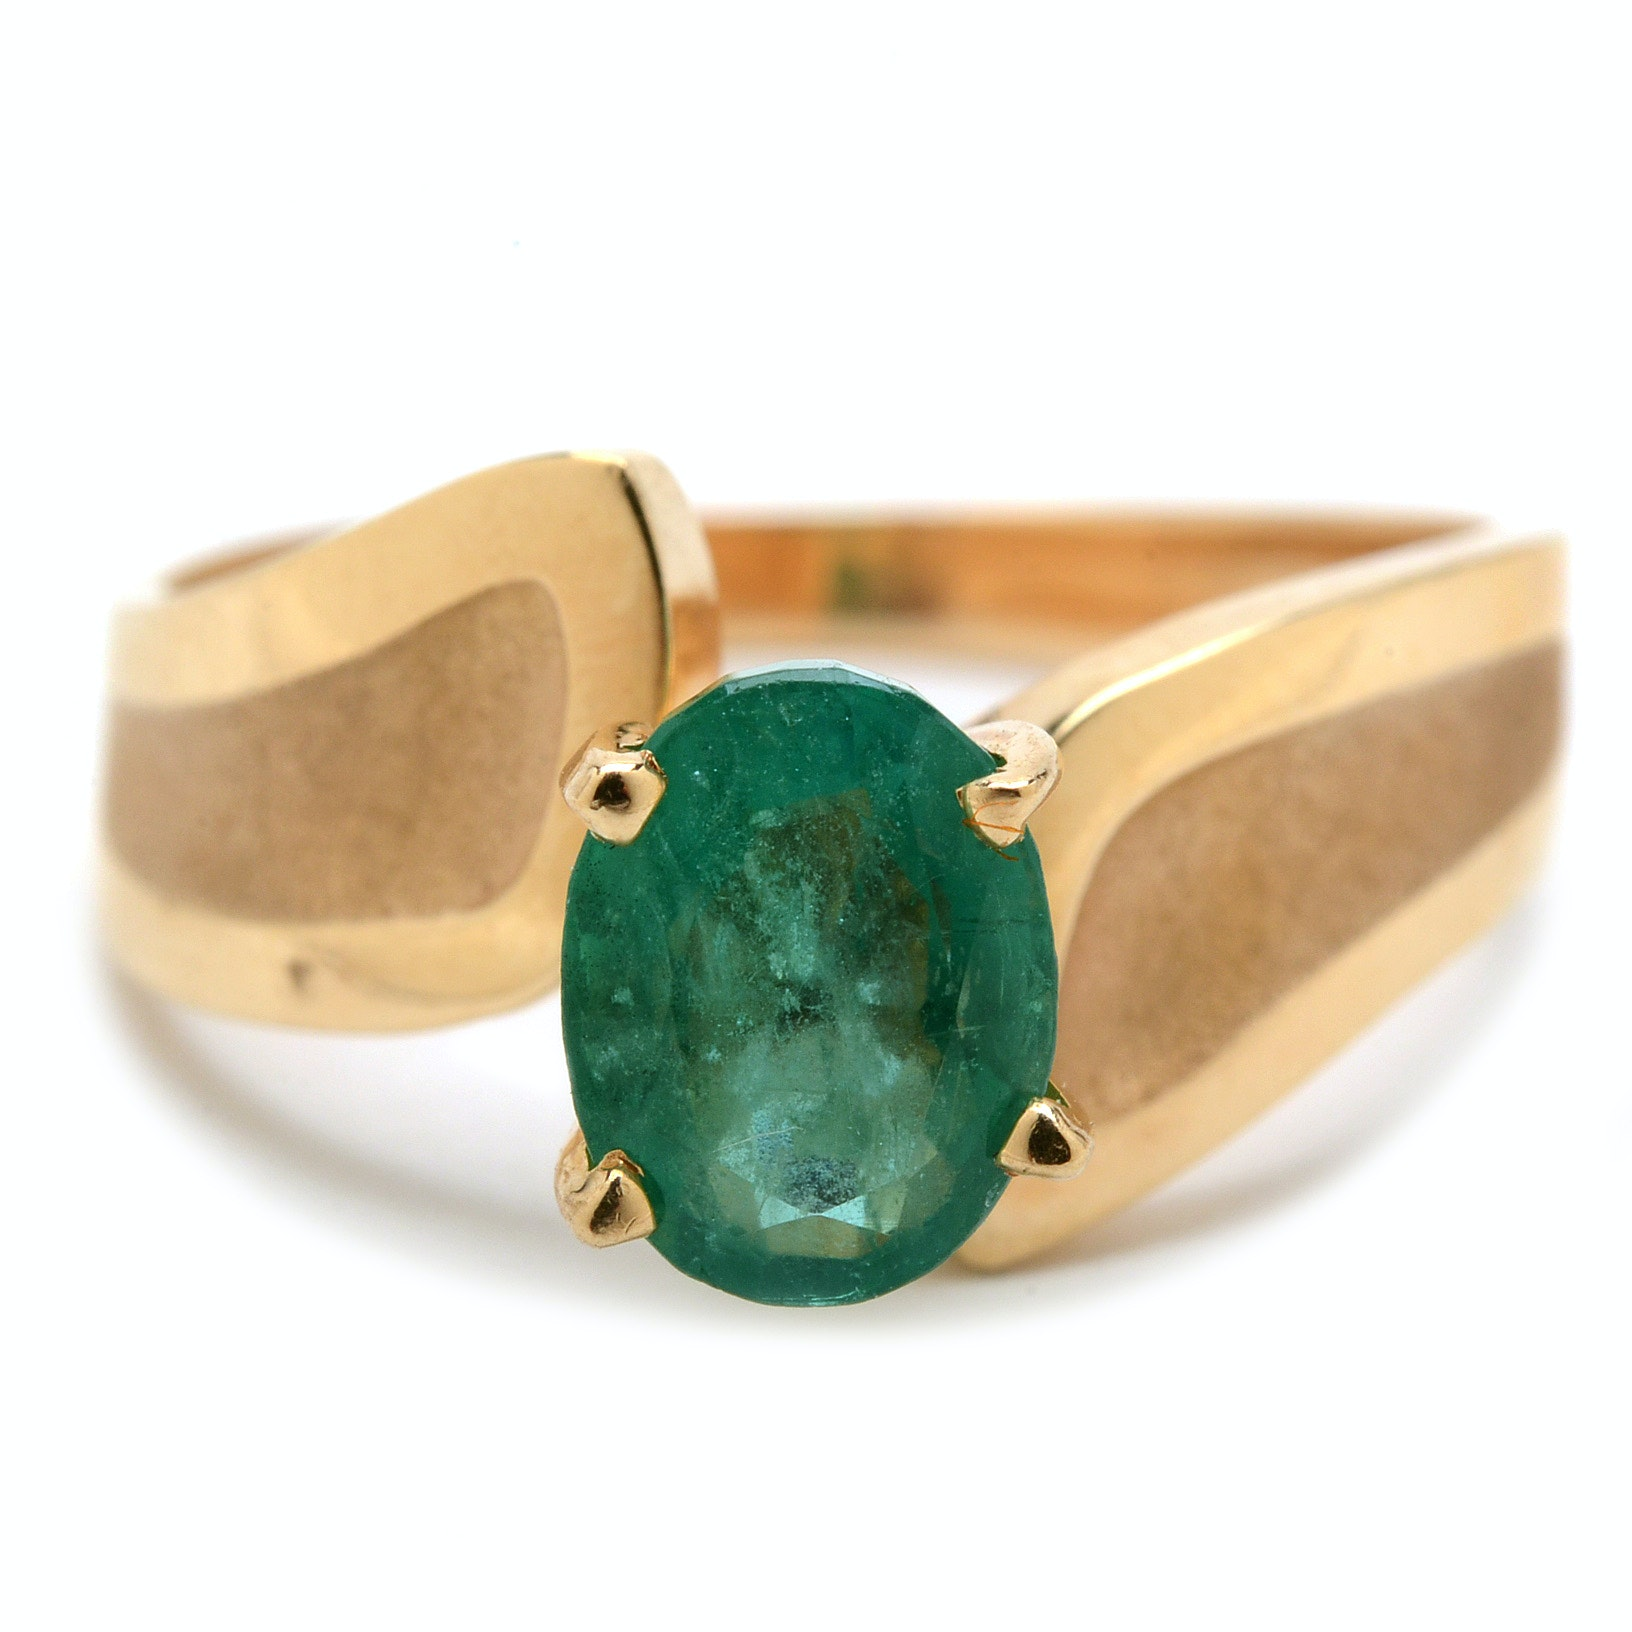 14K Yellow Gold Solitaire 1.14 Carat Natural Emerald Fashion Ring